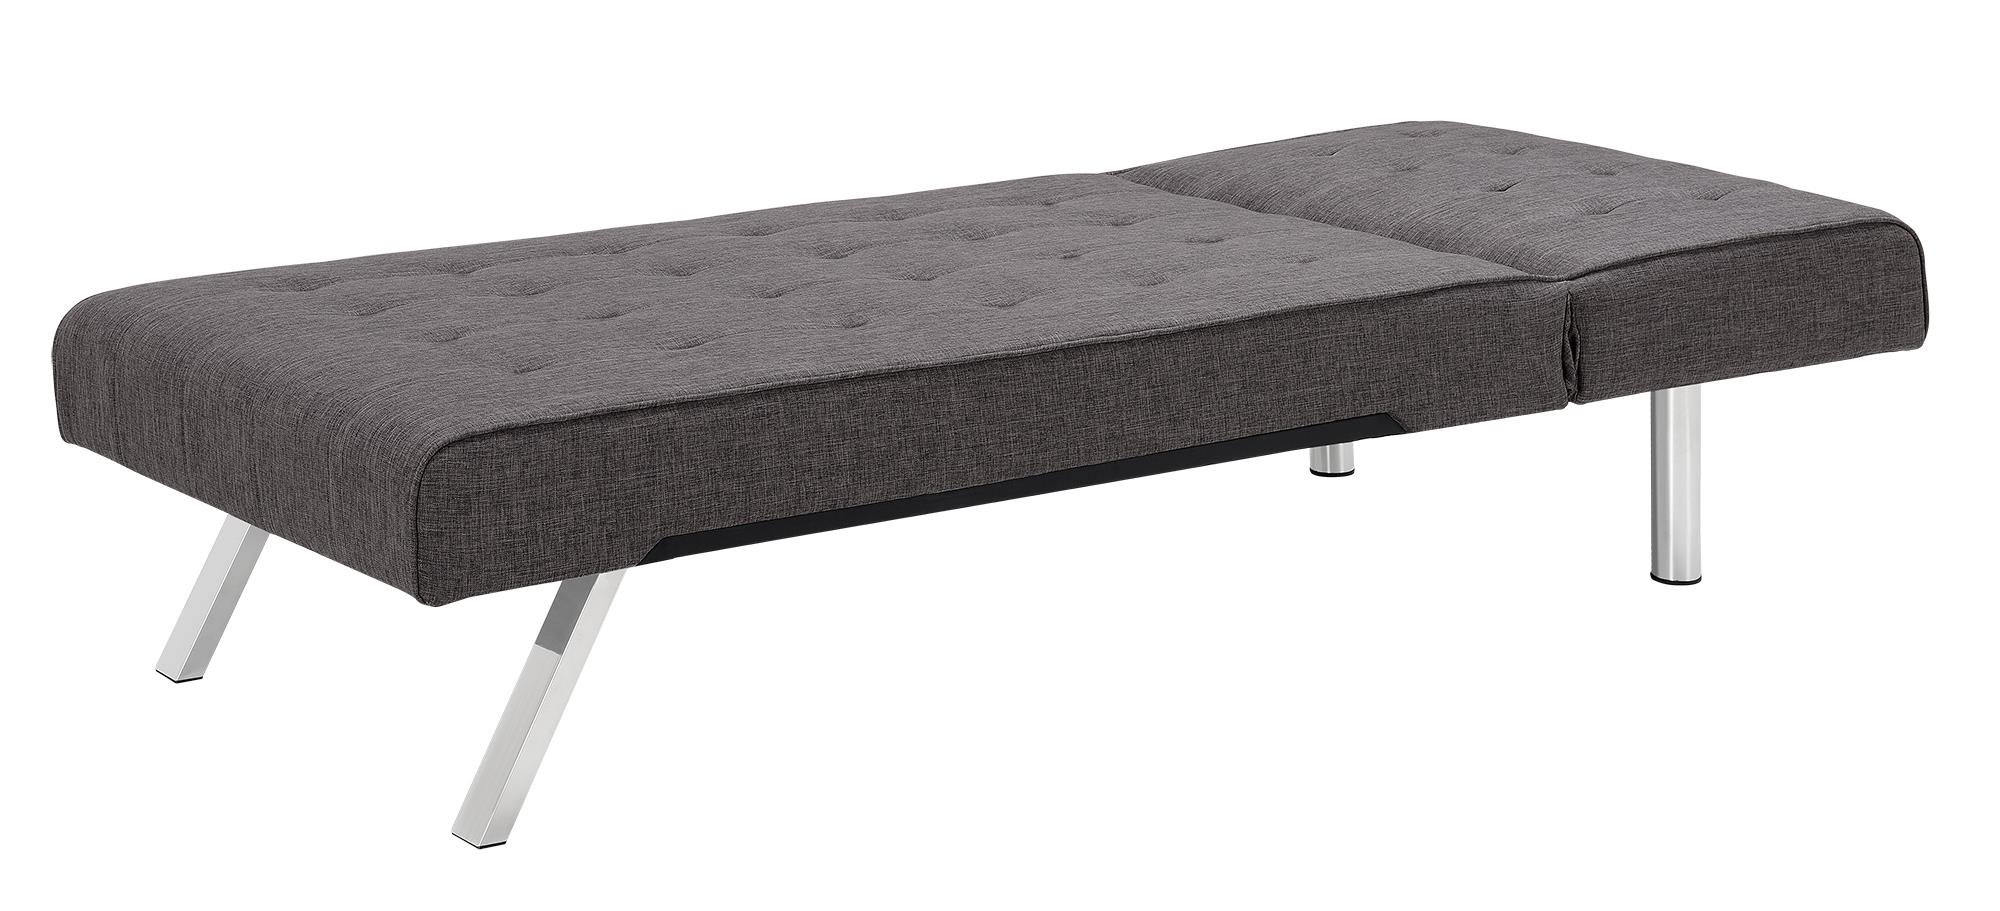 DHP Emily Linen Chaise Lounger, Stylish Design with Chrome Legs, Grey by DHP (Image #1)